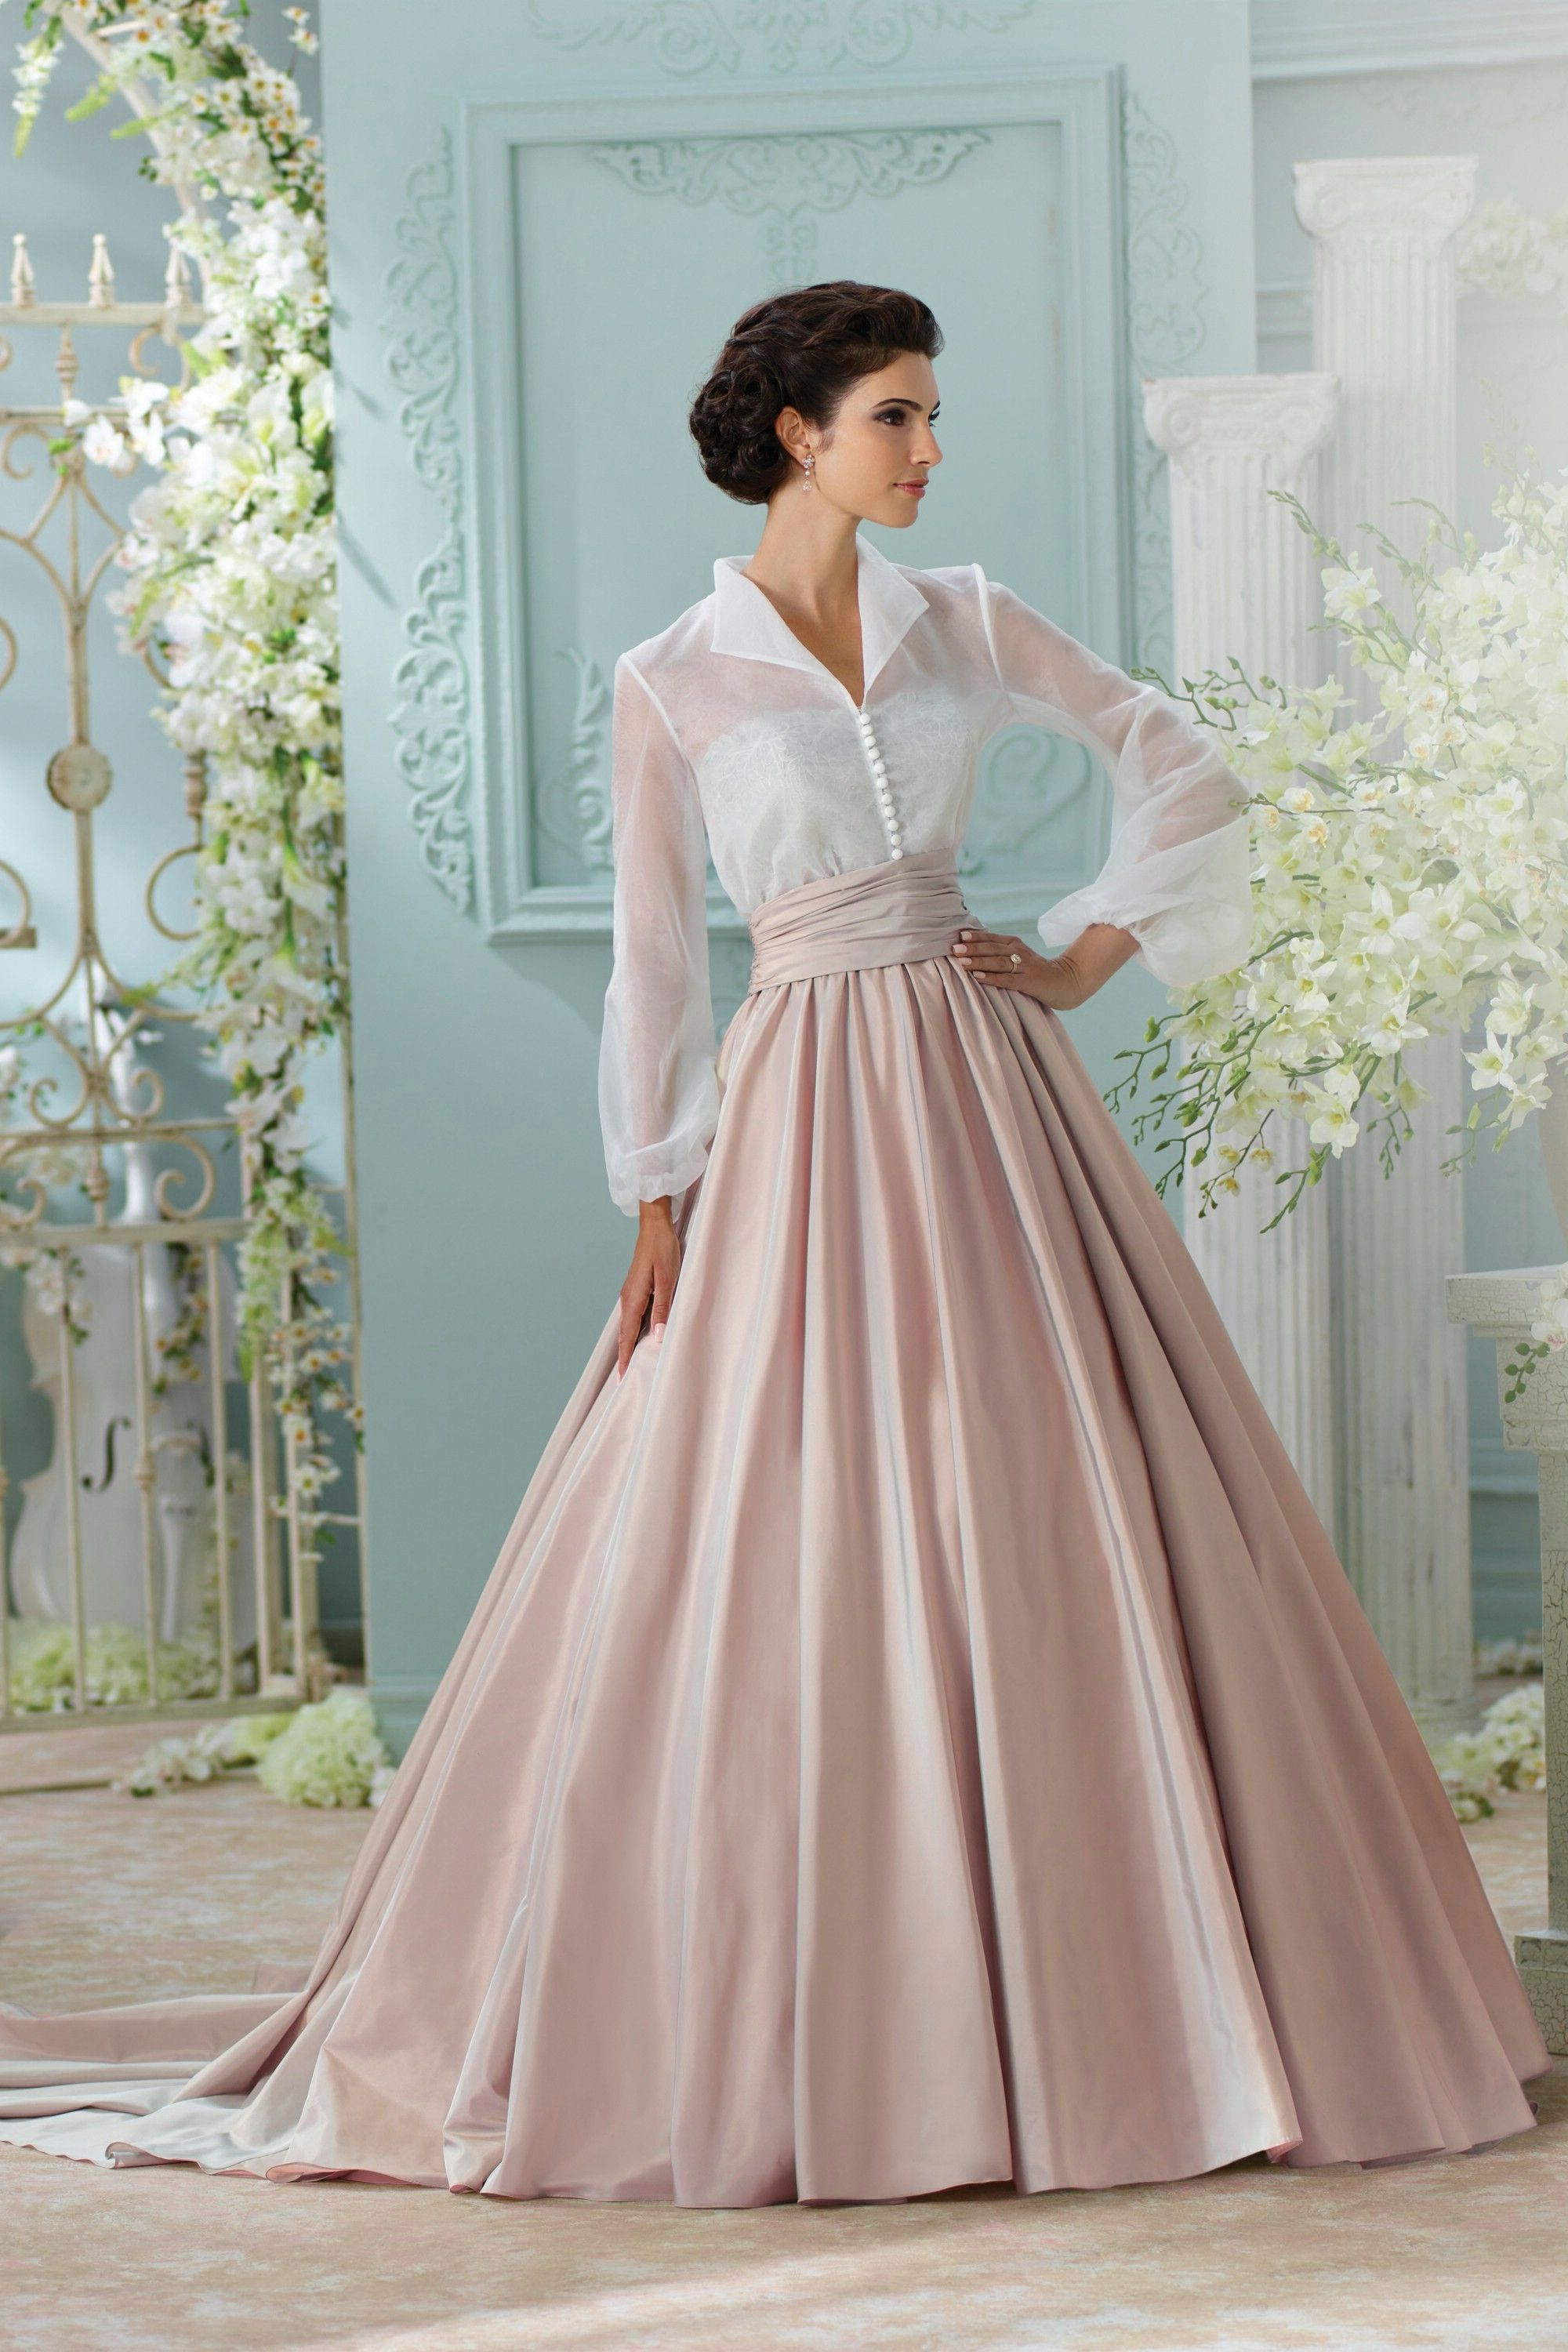 Wedding Dresses, Bridesmaid Dresses, Prom Dresses and Bridal Dresses ...